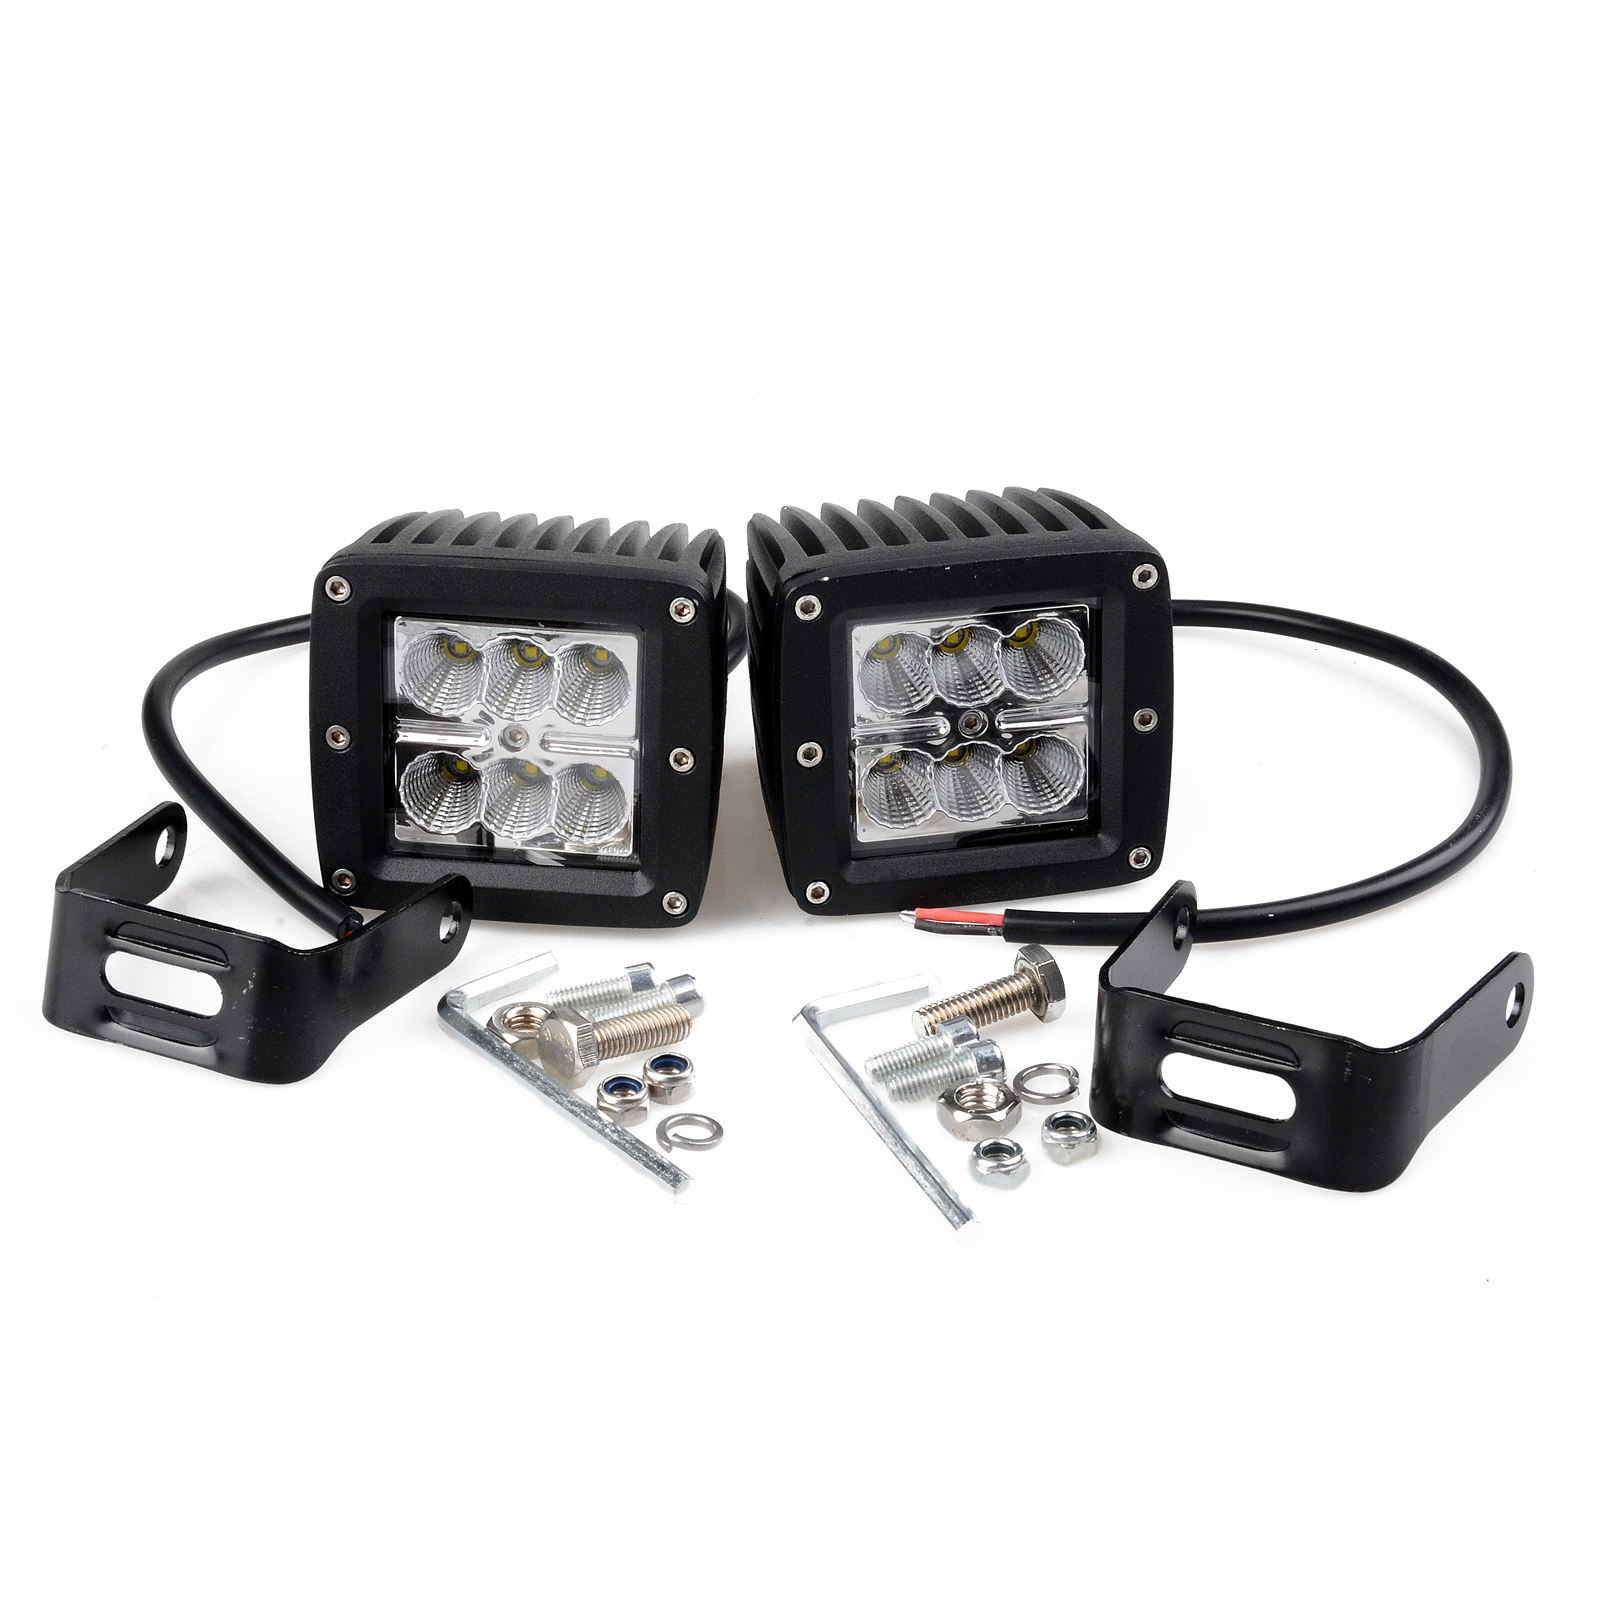 KAWELL® 2 Pack 18W Flood Light 1000 Lumens 3x3 LED Pods Marine RZR Ranger Polaris Pods for Work, Driving, Fog, Safety, 4x4, Atv, Car, Truck, 4wd, Suv, Tractor, Motorcycle, Boat, Quad, Utv, and Auxiliary Lighting